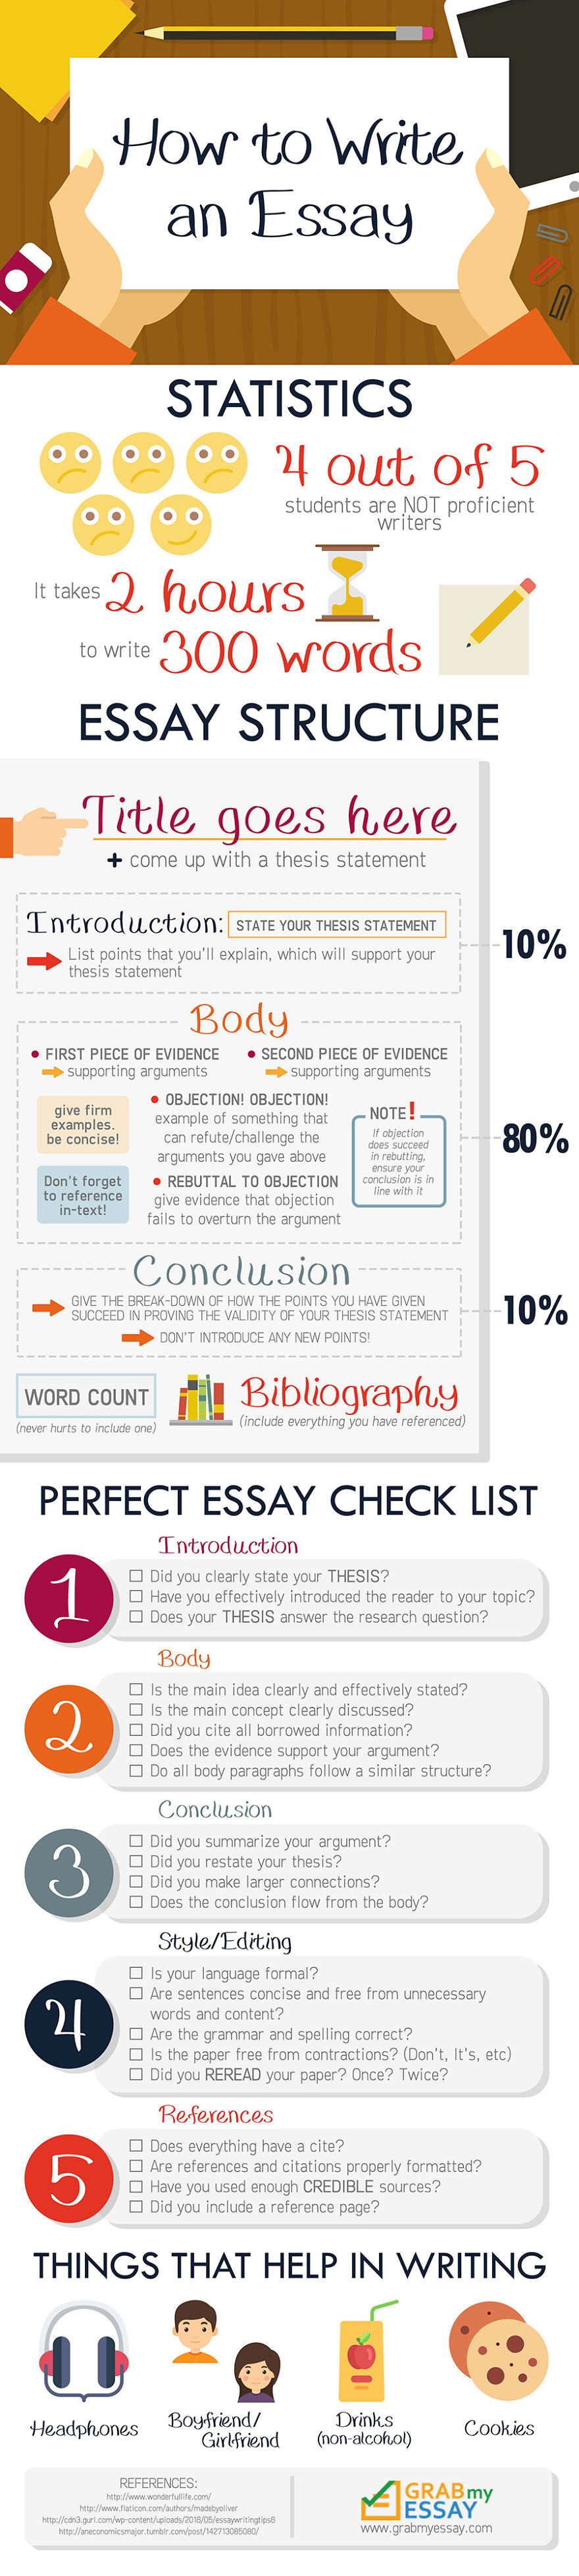 college essays college application essays social issue essay topics social issue divorce essay example social issue essay example